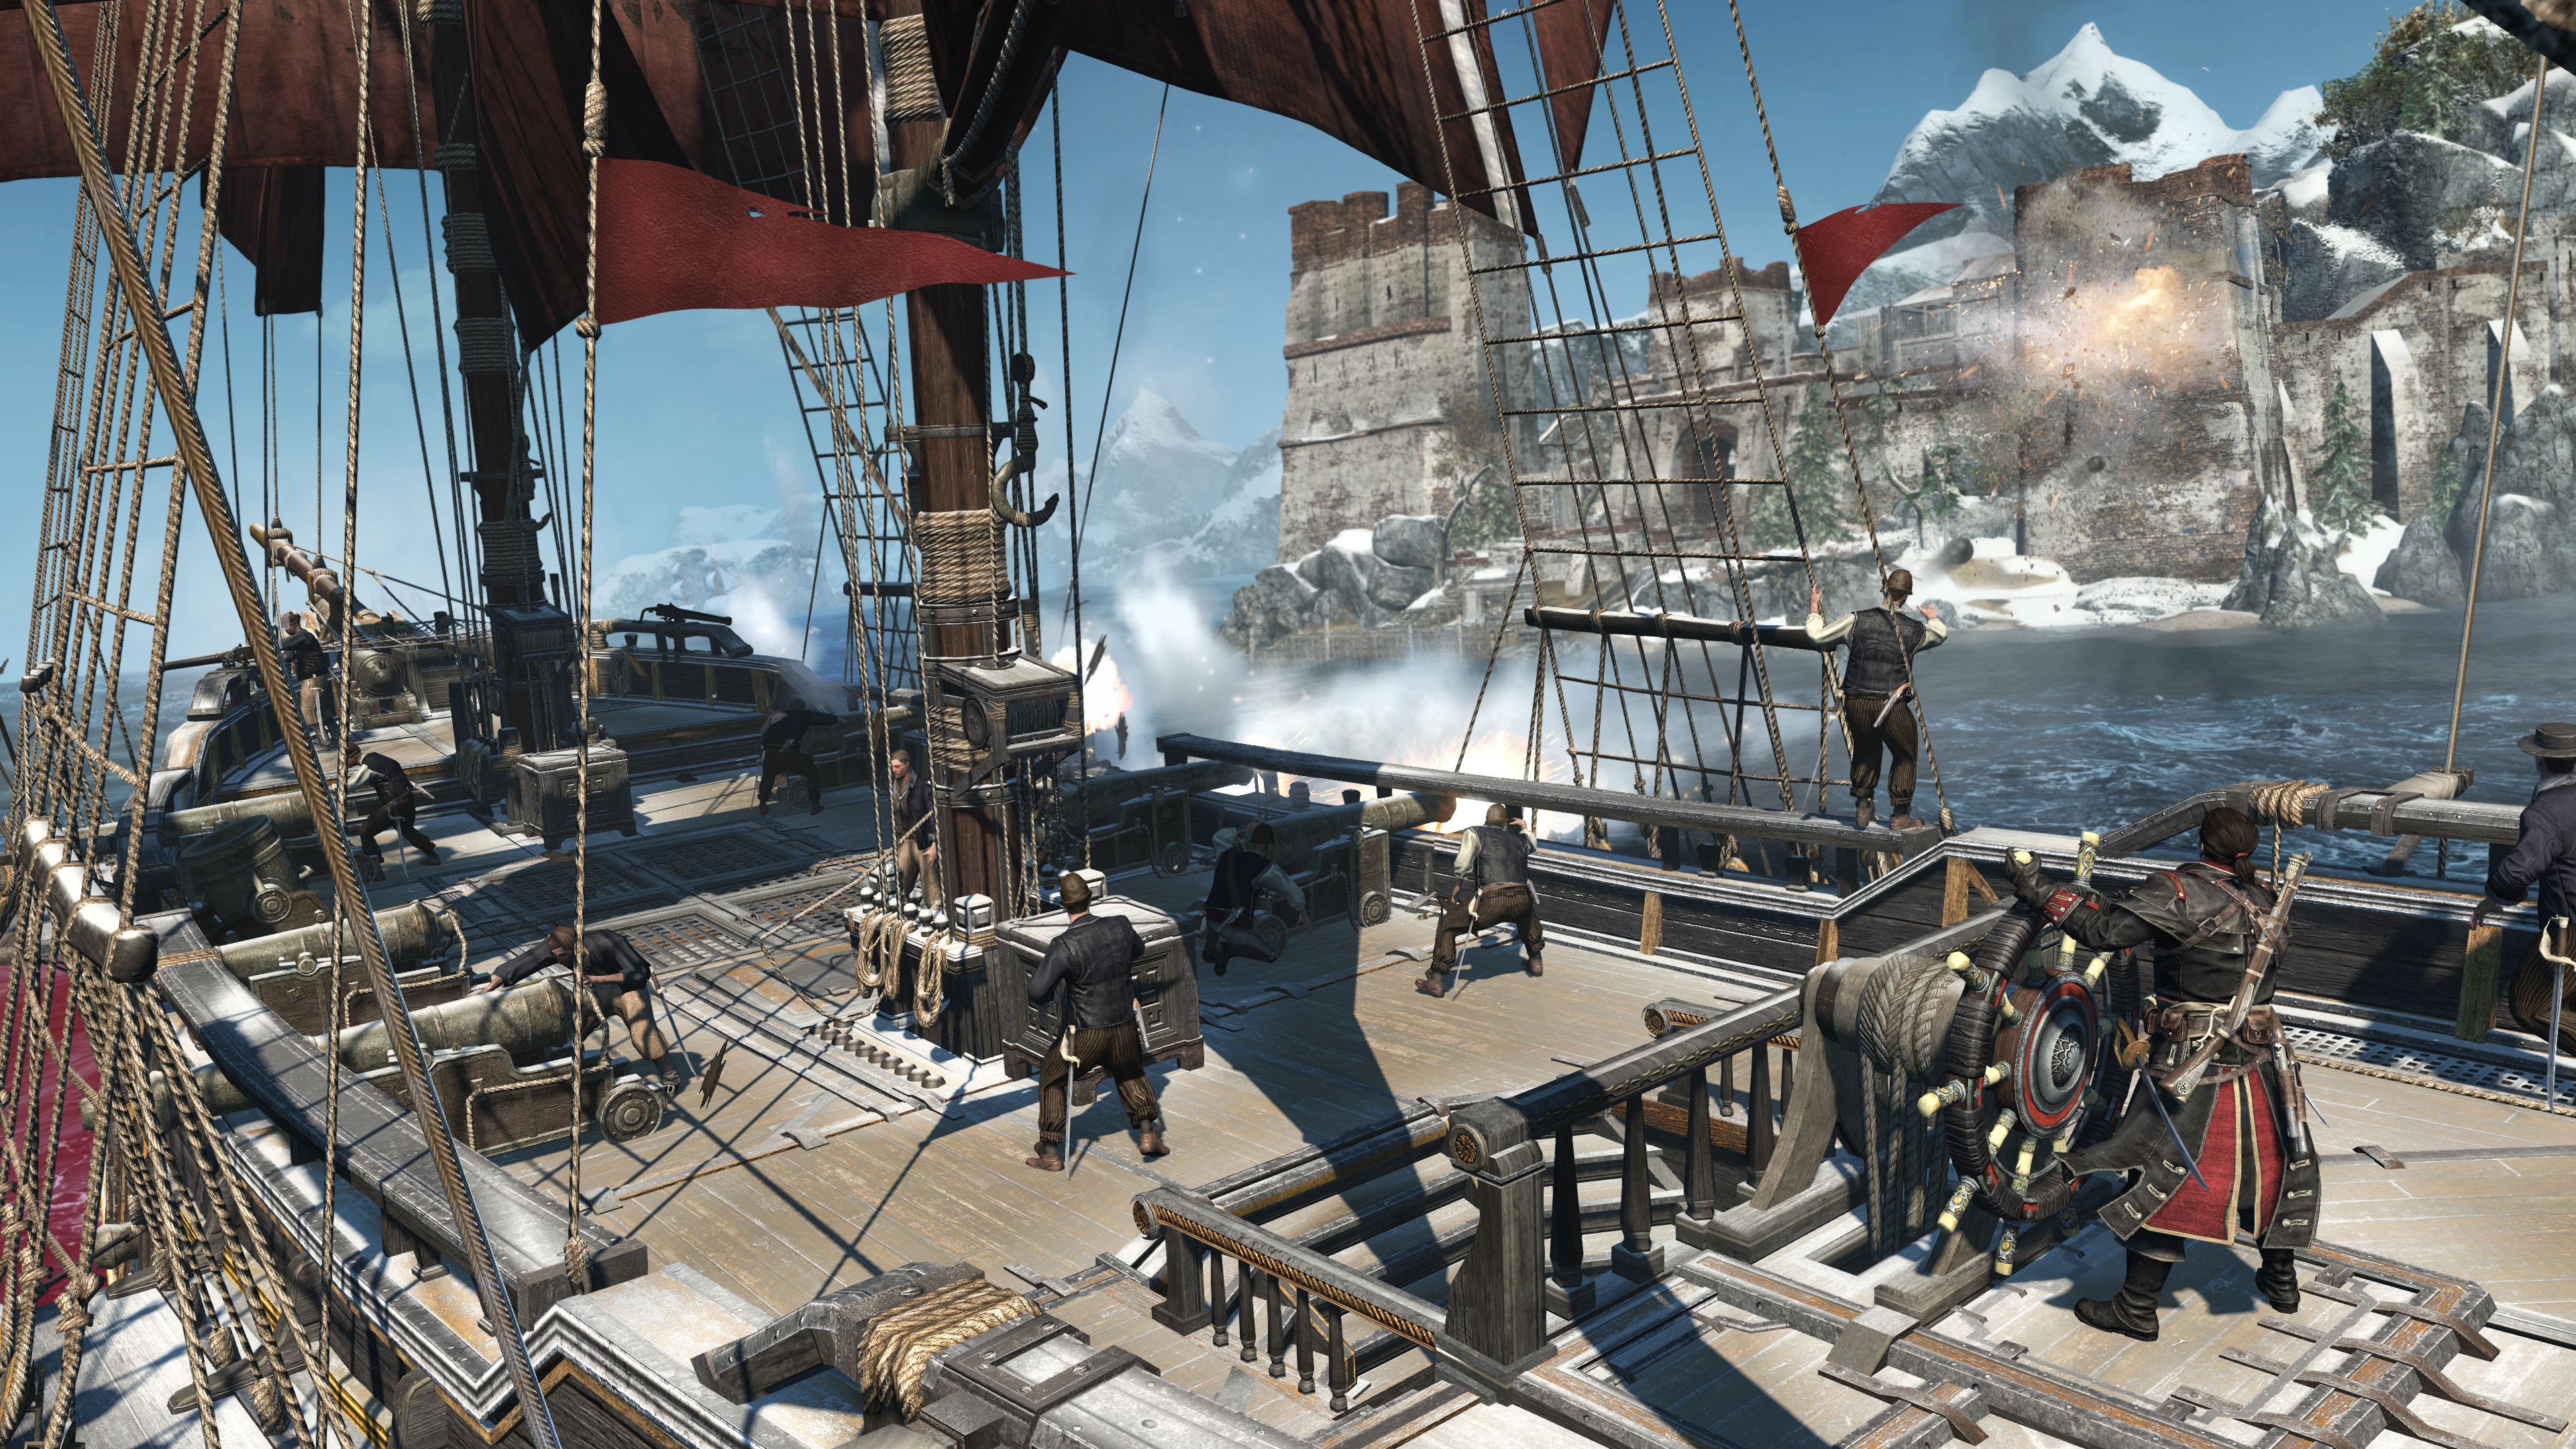 Assassin's Creed: Rogue hits PS4 and Xbox One in March